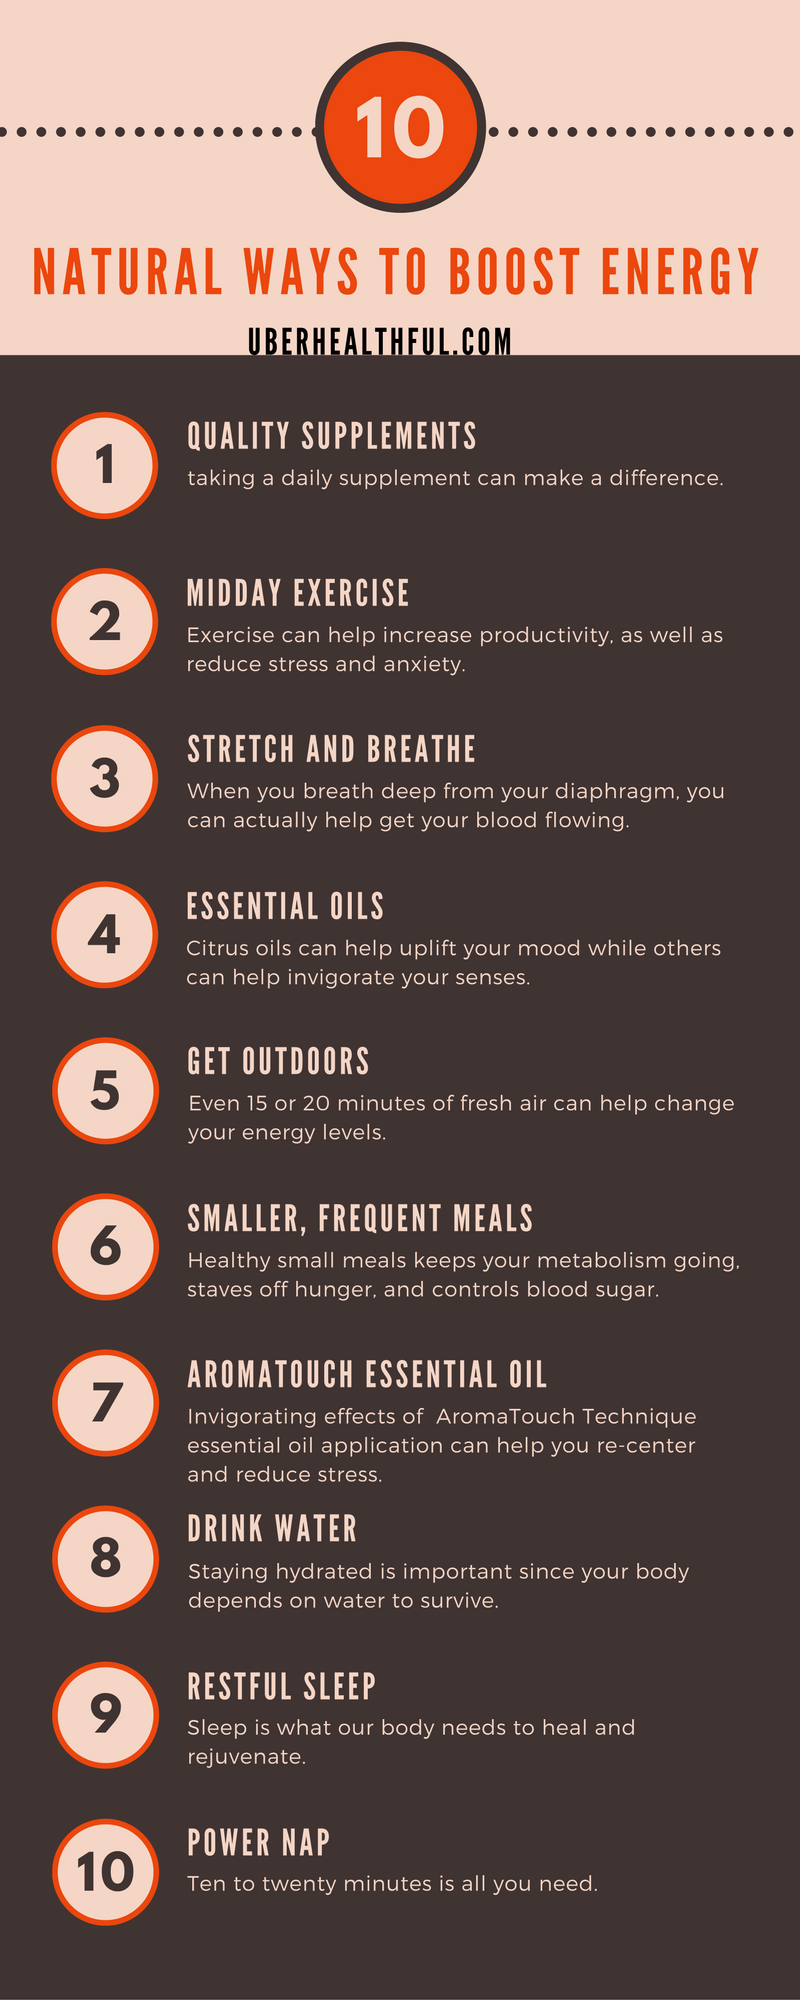 50 Natural Ways To Boost Your Energy |Natural Ways Energy